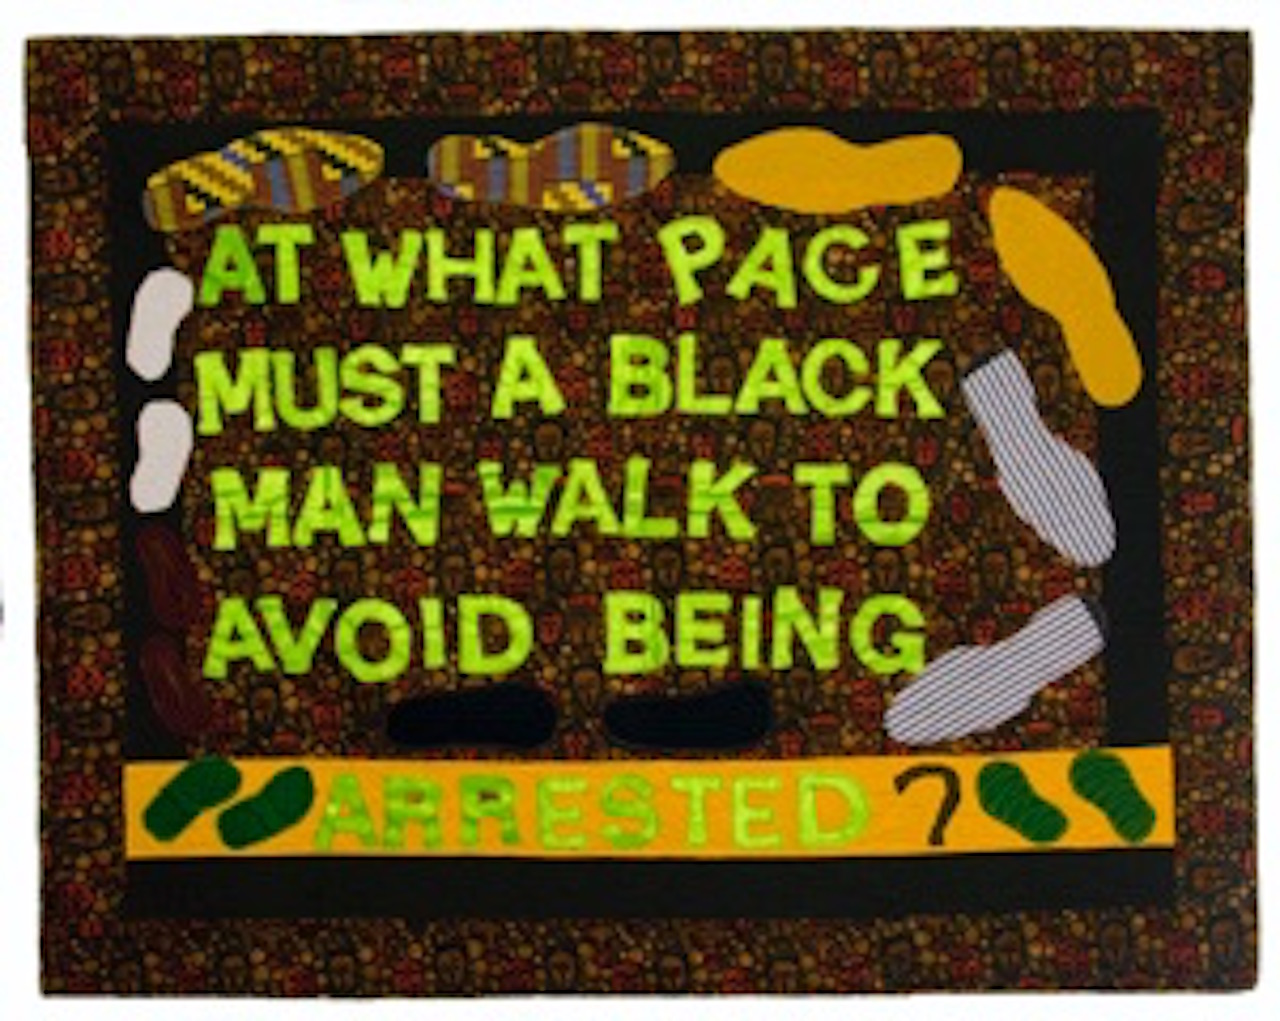 Clemons Dorsey_Jackie_Avoid being Arrested_42x53